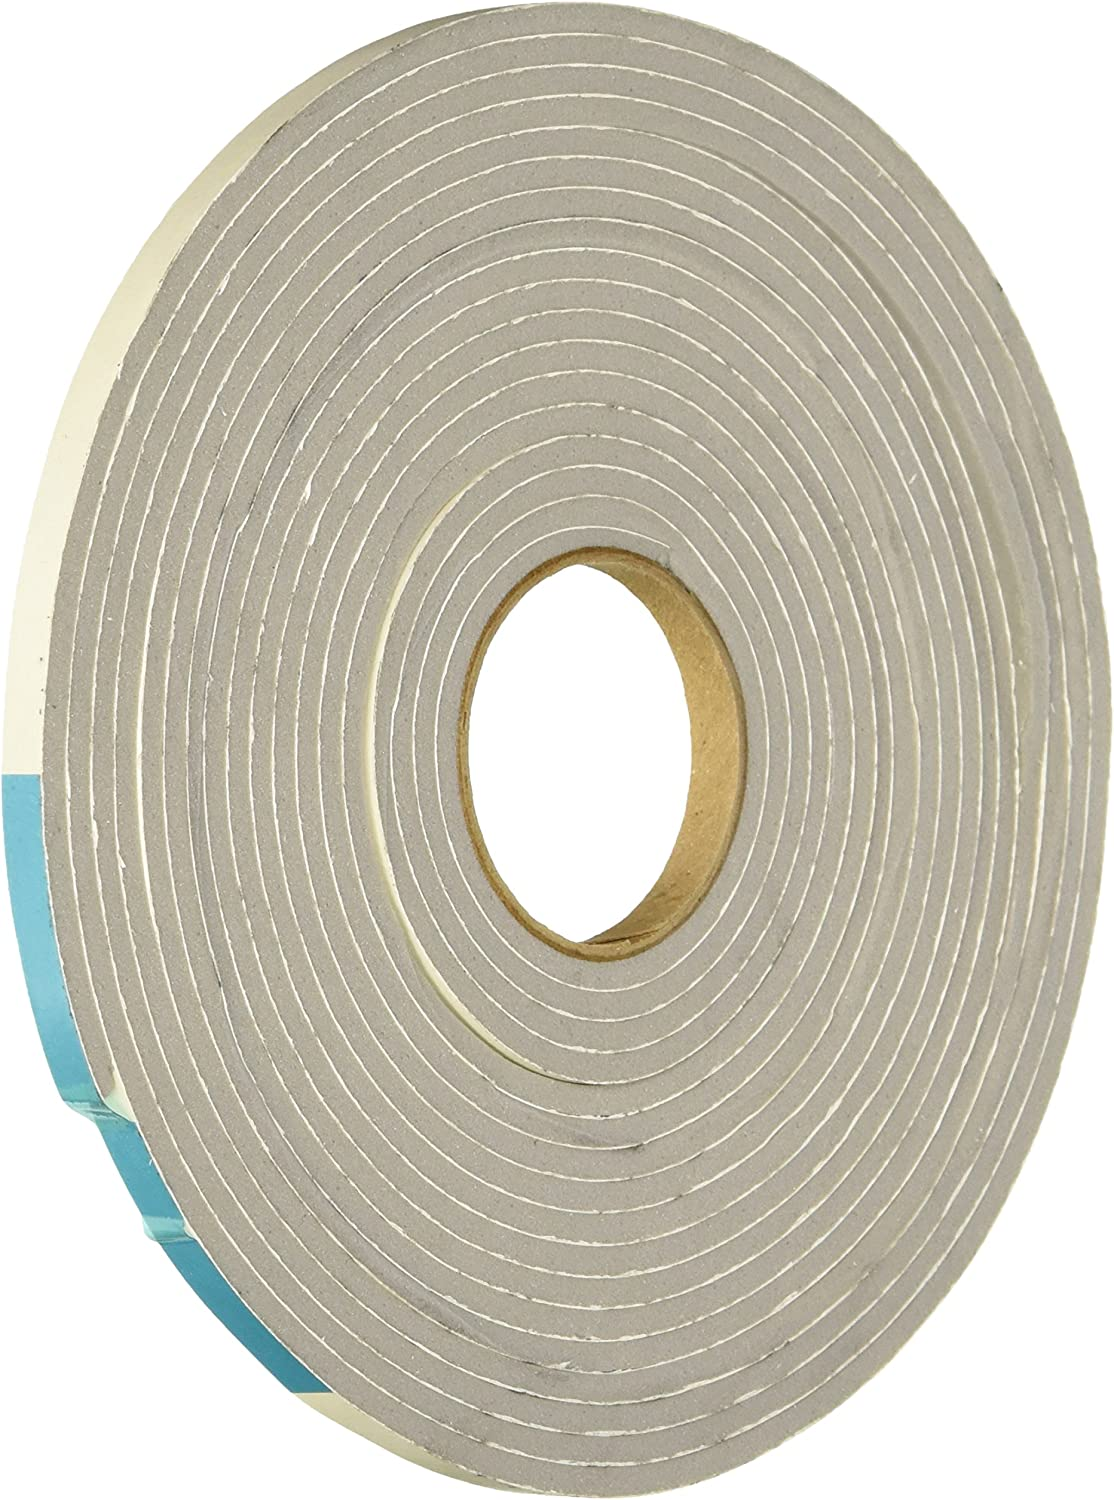 3//16-by-3//8-Inch by 17 Feet, M-D Building Products 2253 High Density Foam Tape